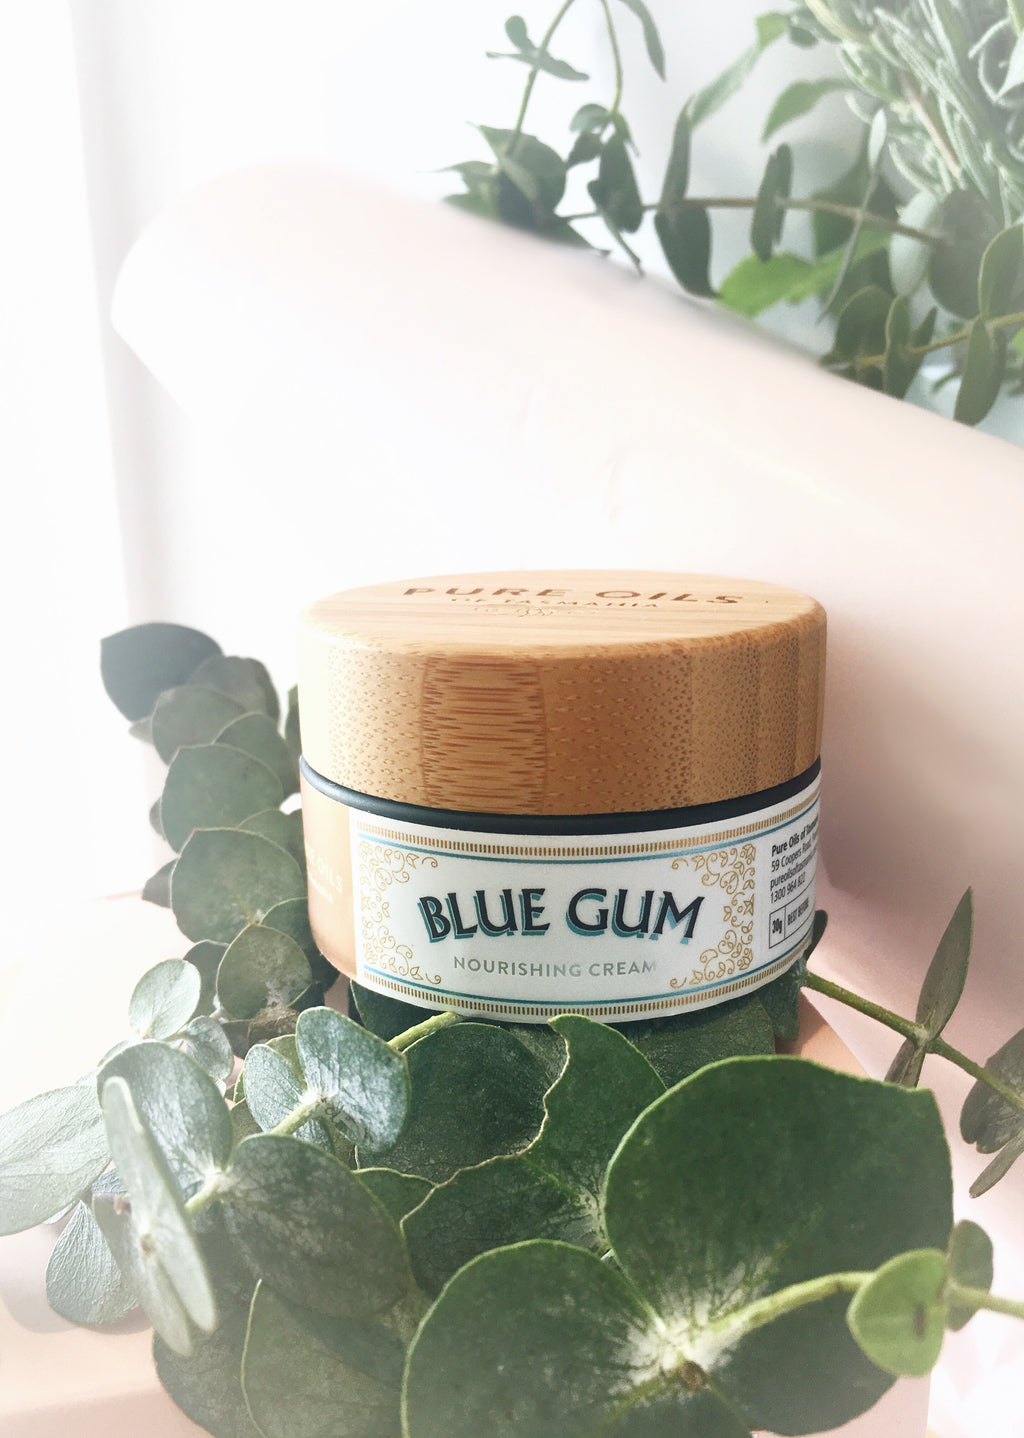 Blue Gum Nourishing Cream